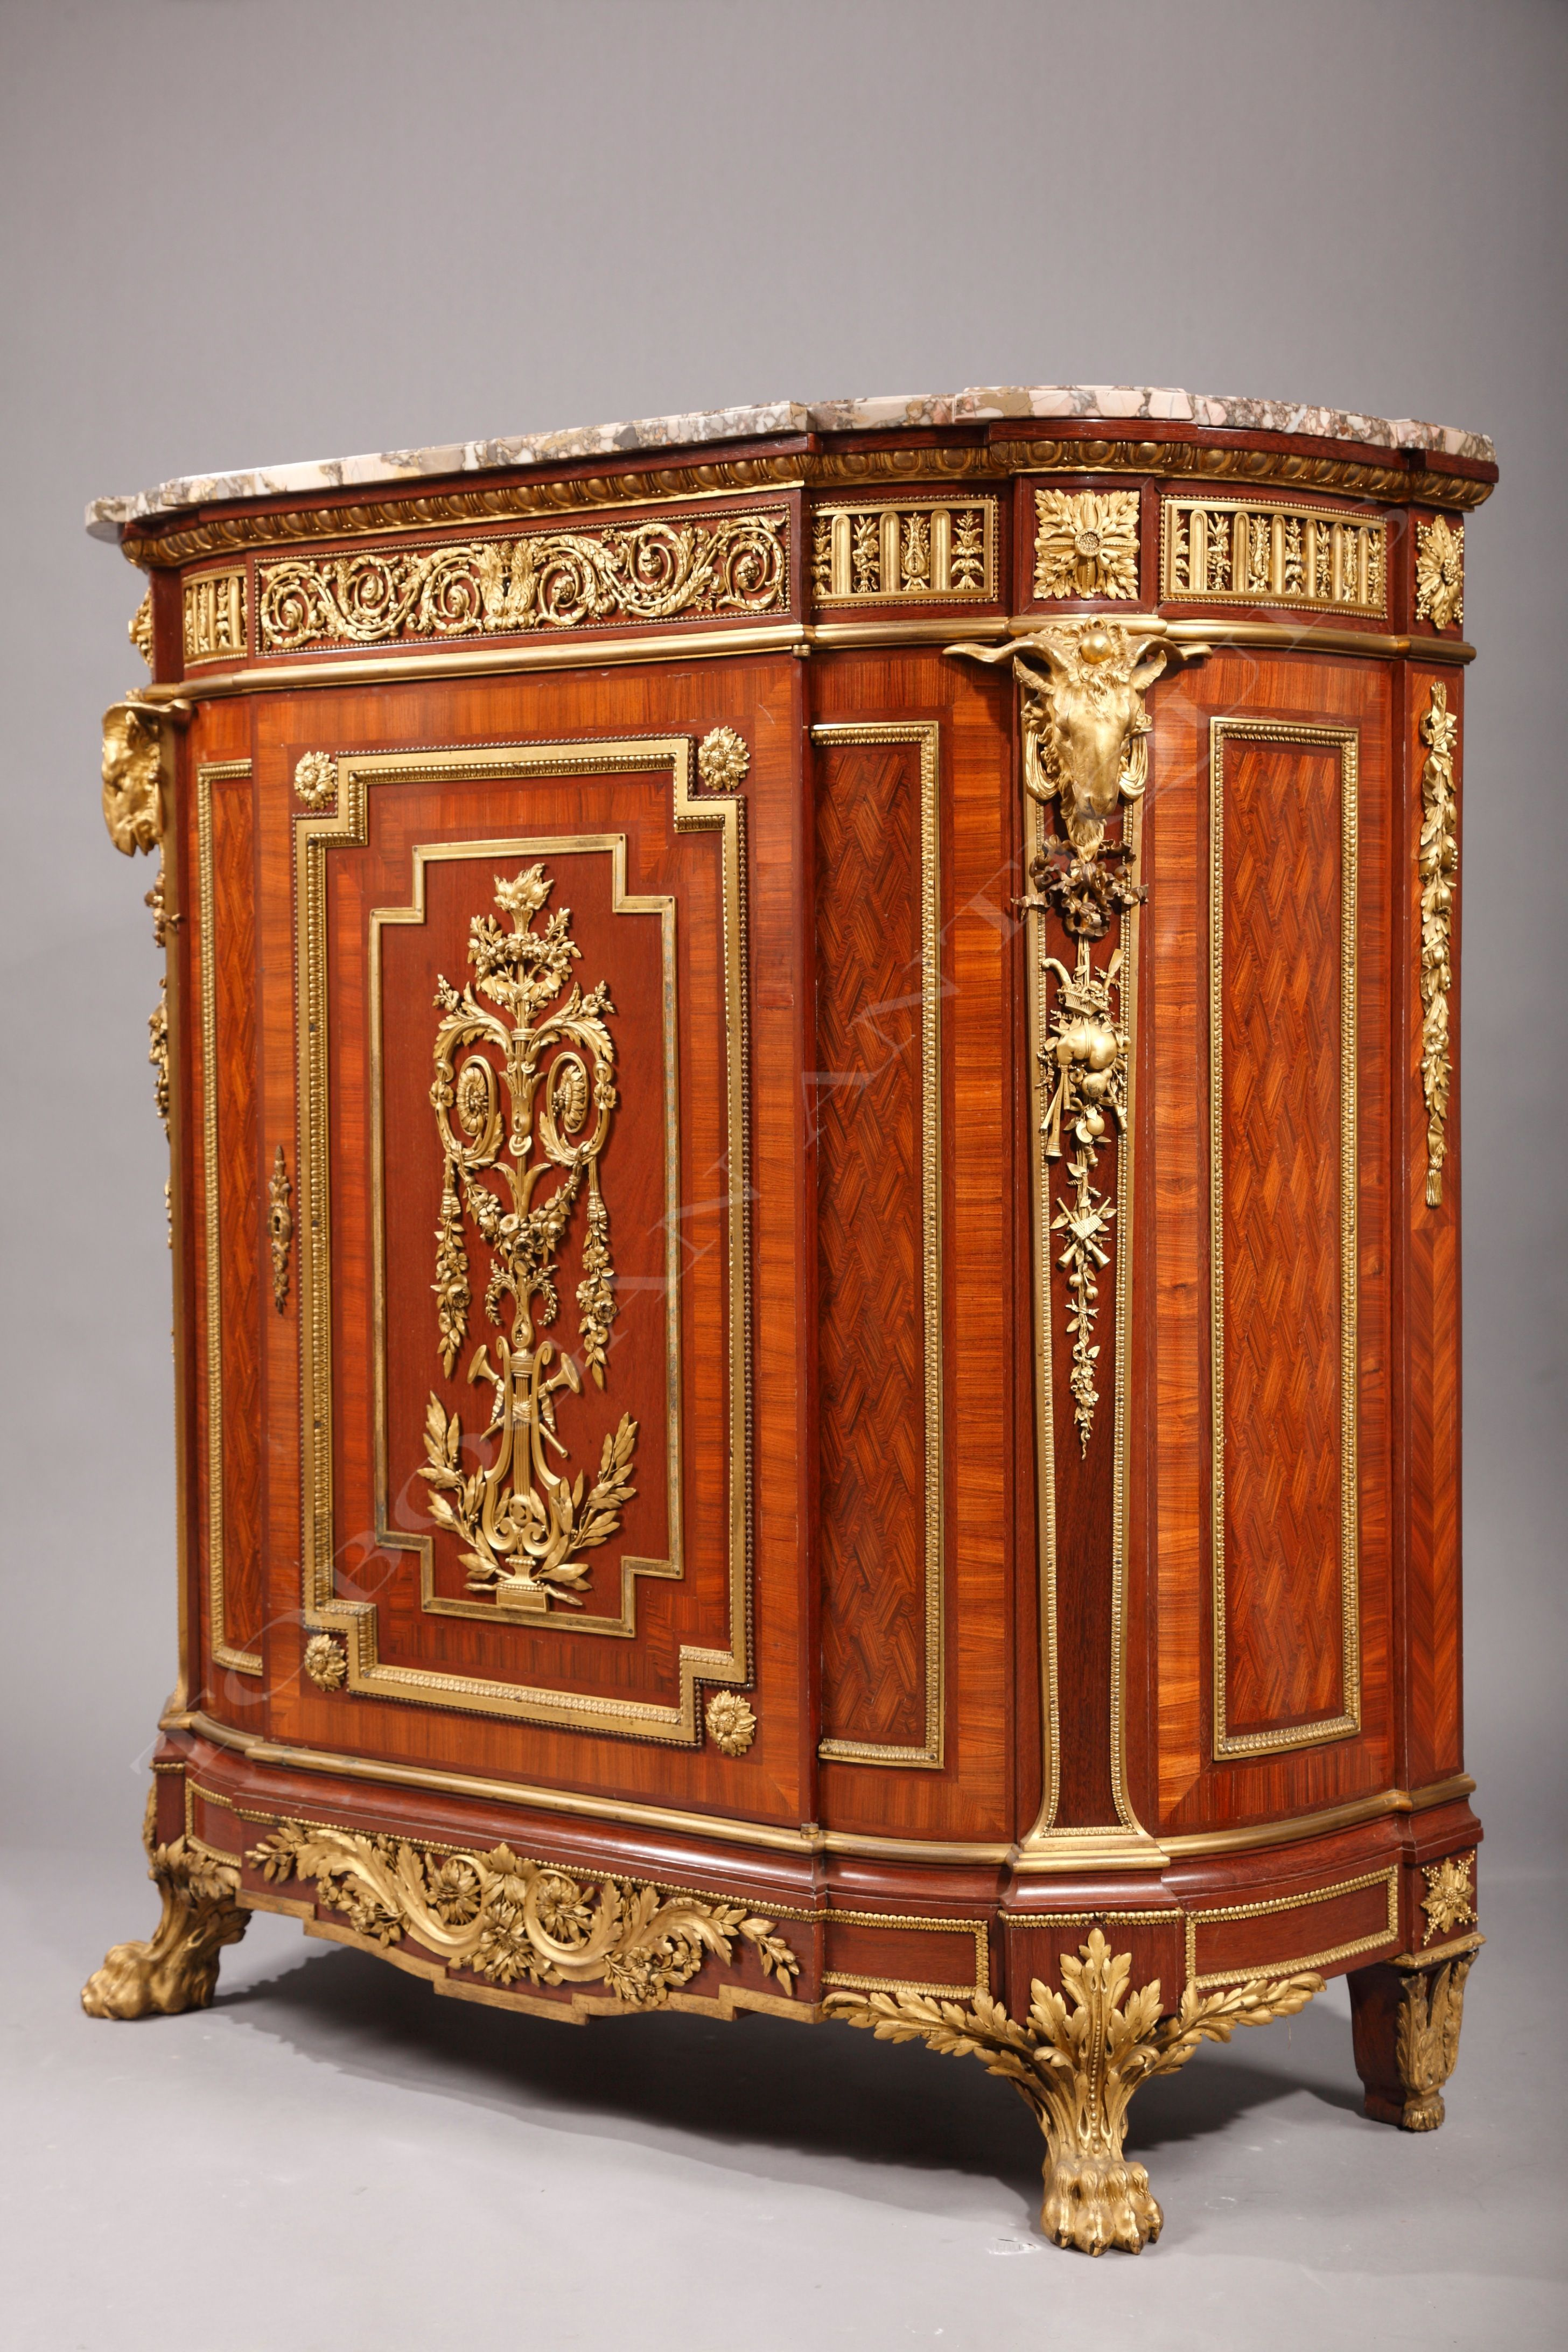 19th century meubl d appui by guillaume and jean michel for Meuble for french furniture